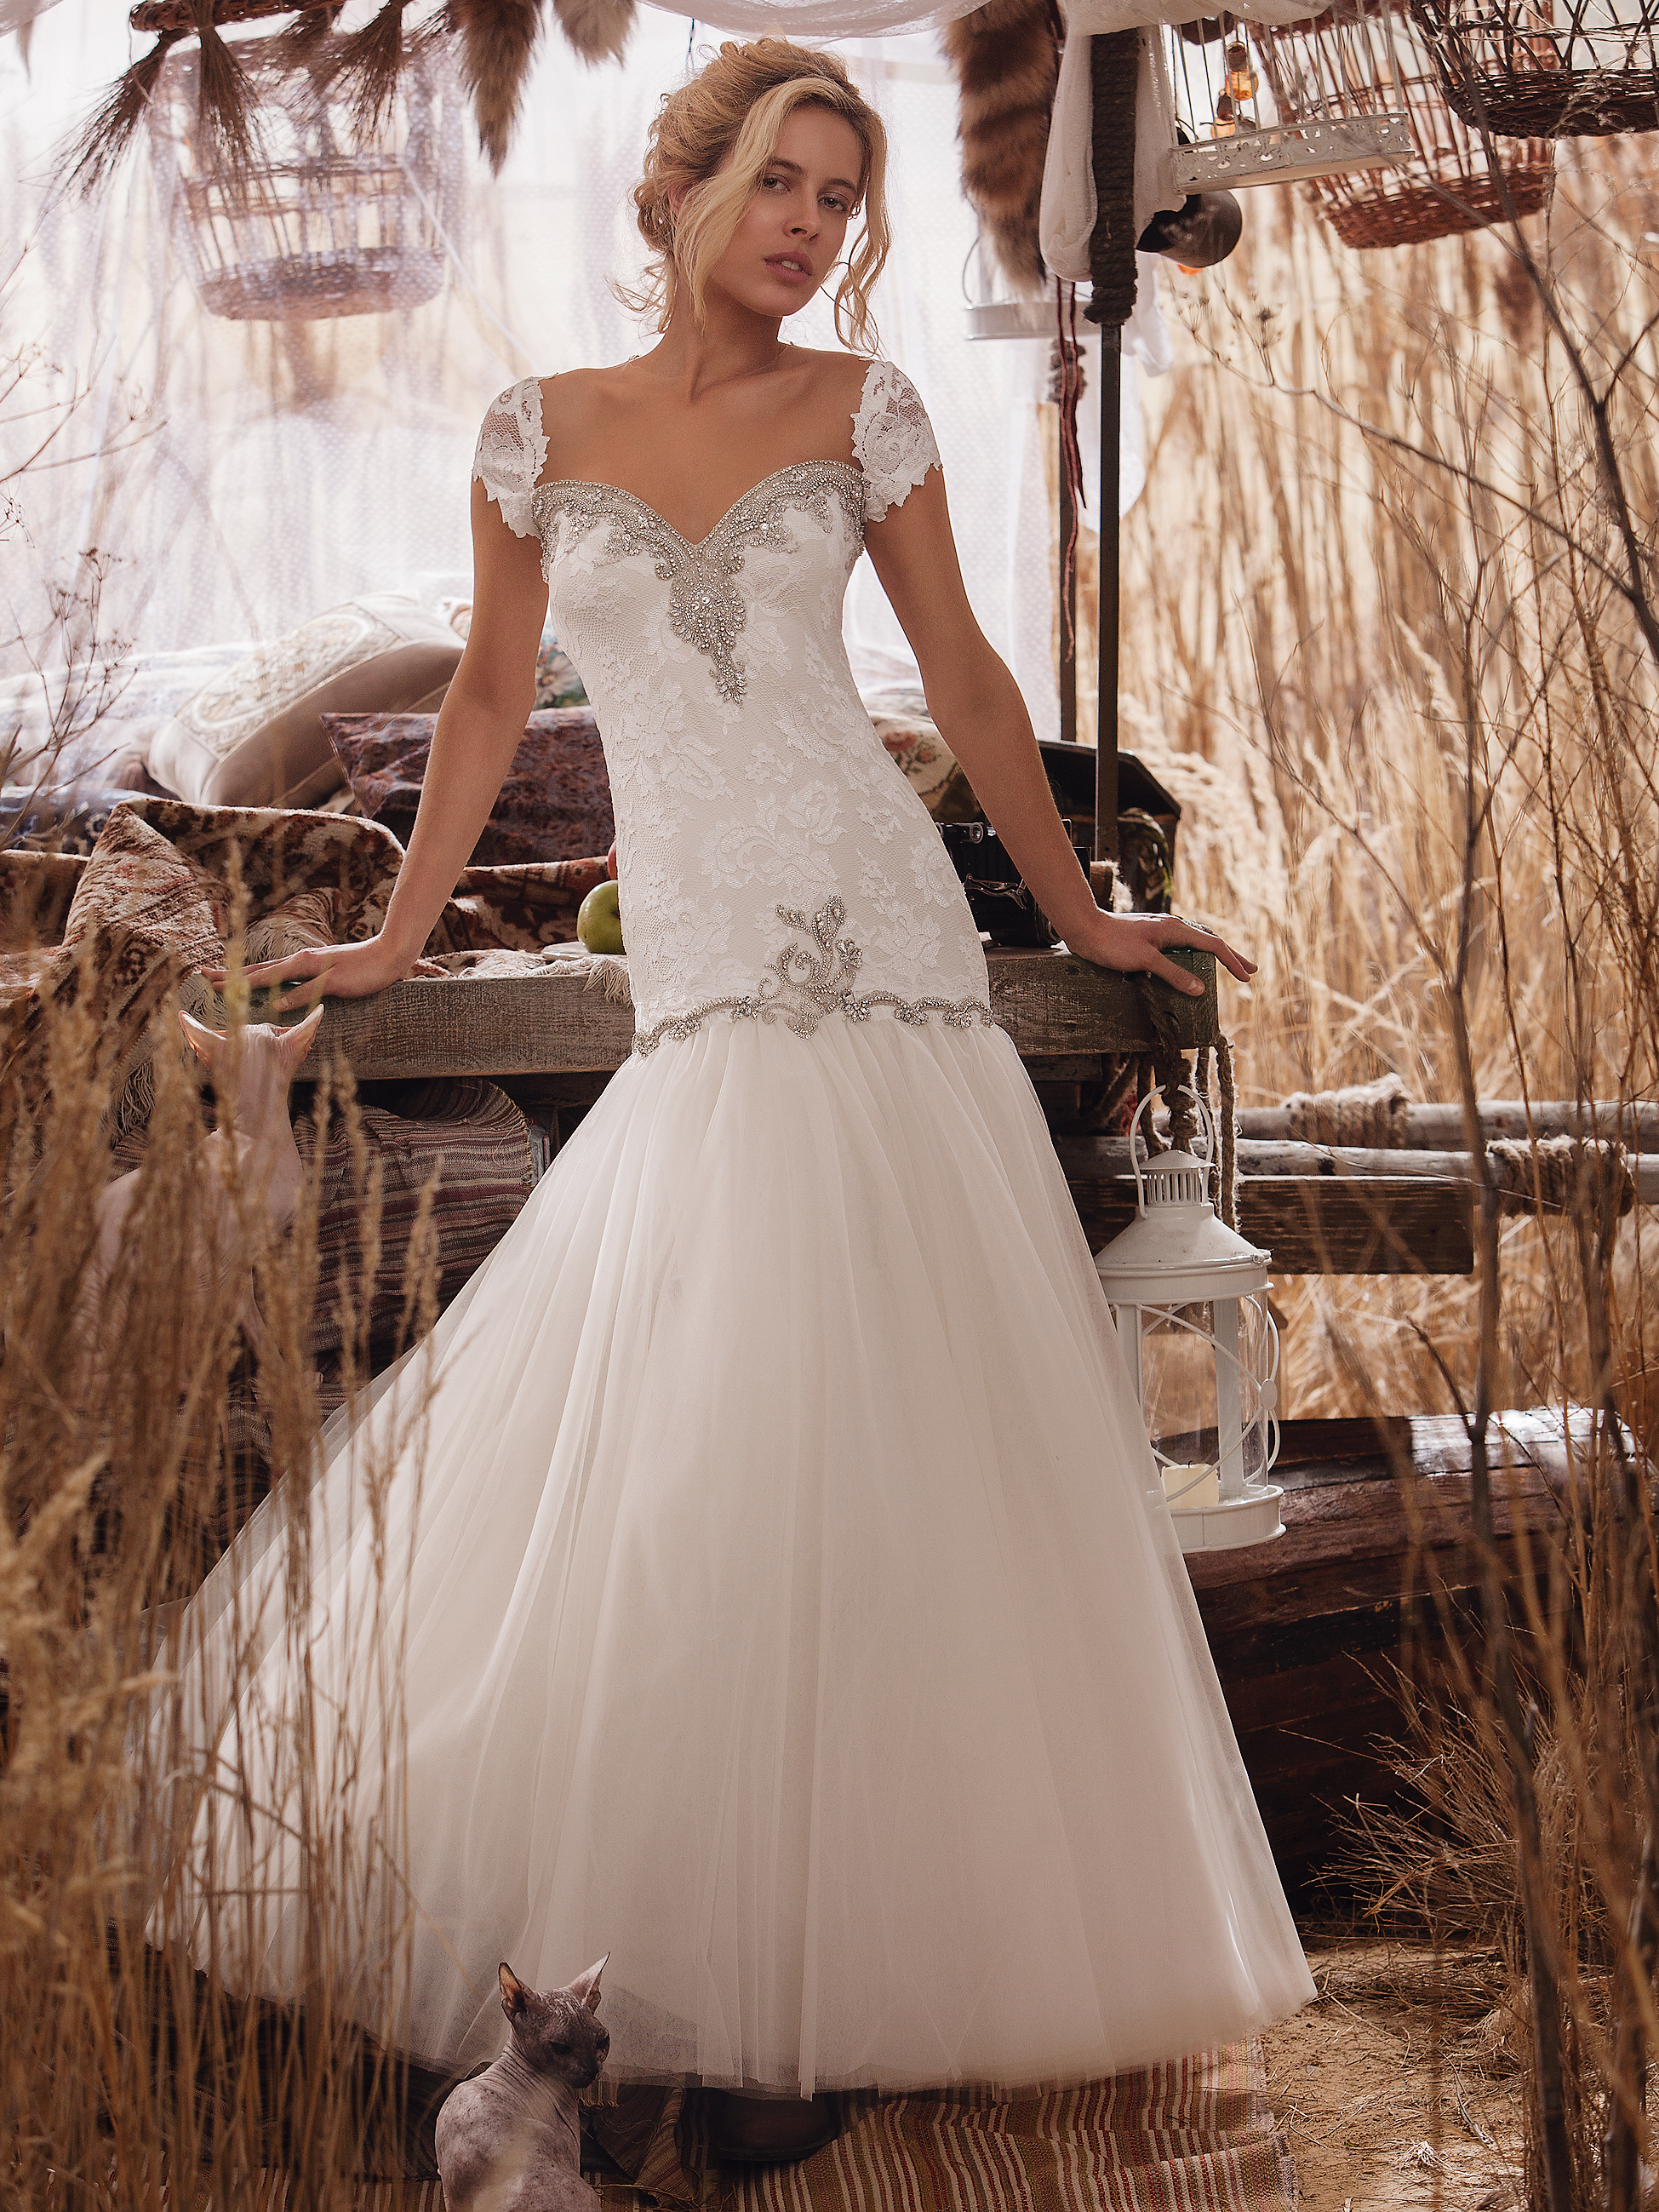 Rustic Wedding Gown: Fall Country Wedding Dresses At Websimilar.org